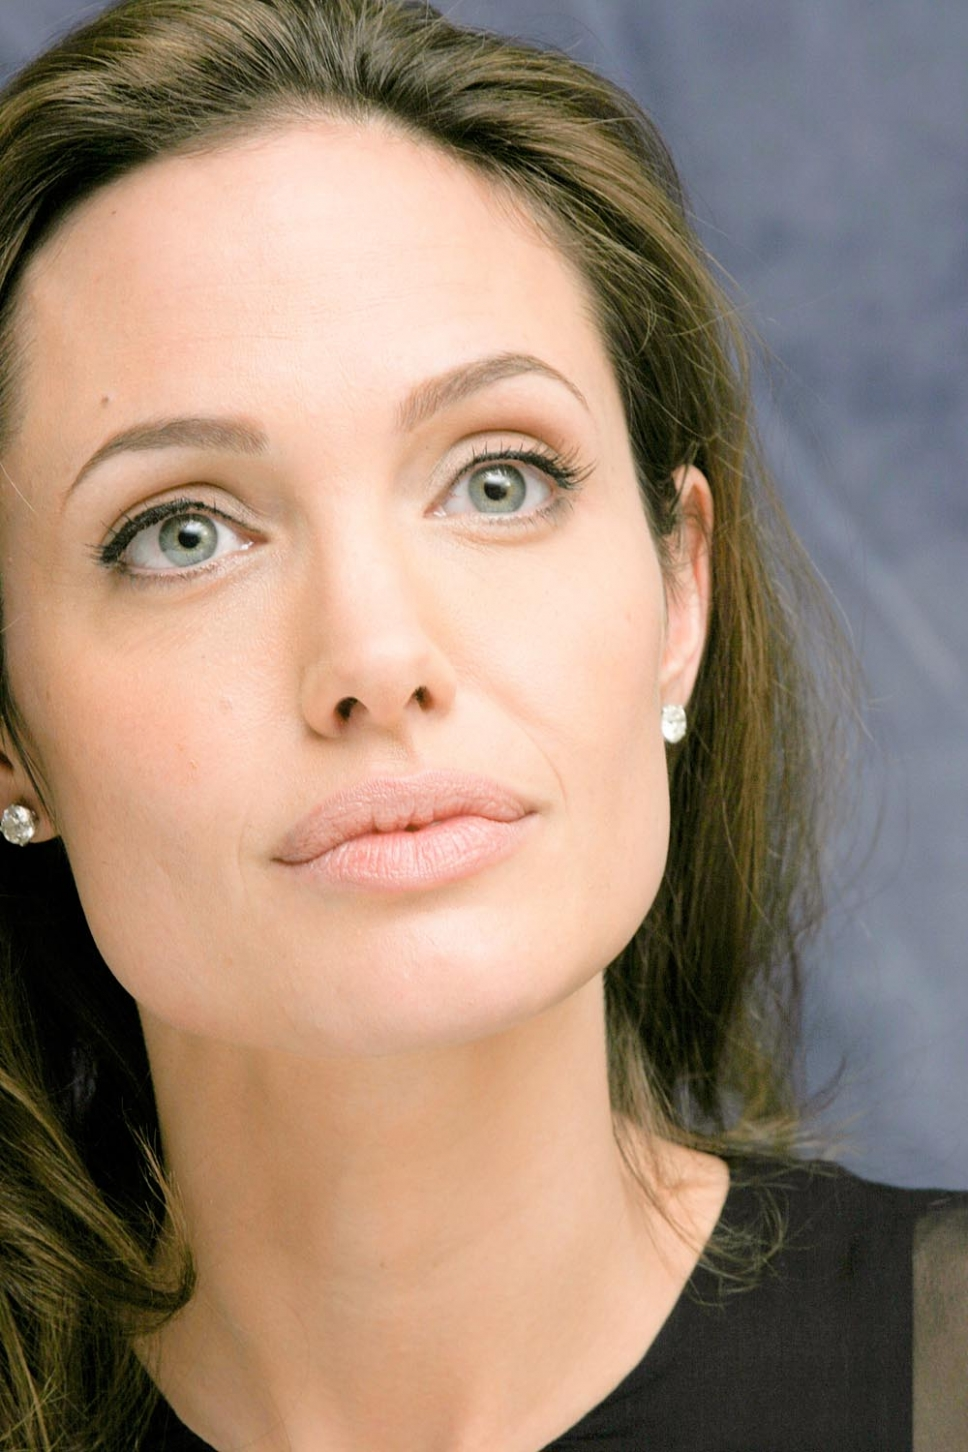 Angelina jolie photos without makeup 2015 Honda VFR800 specifications and pictures - m